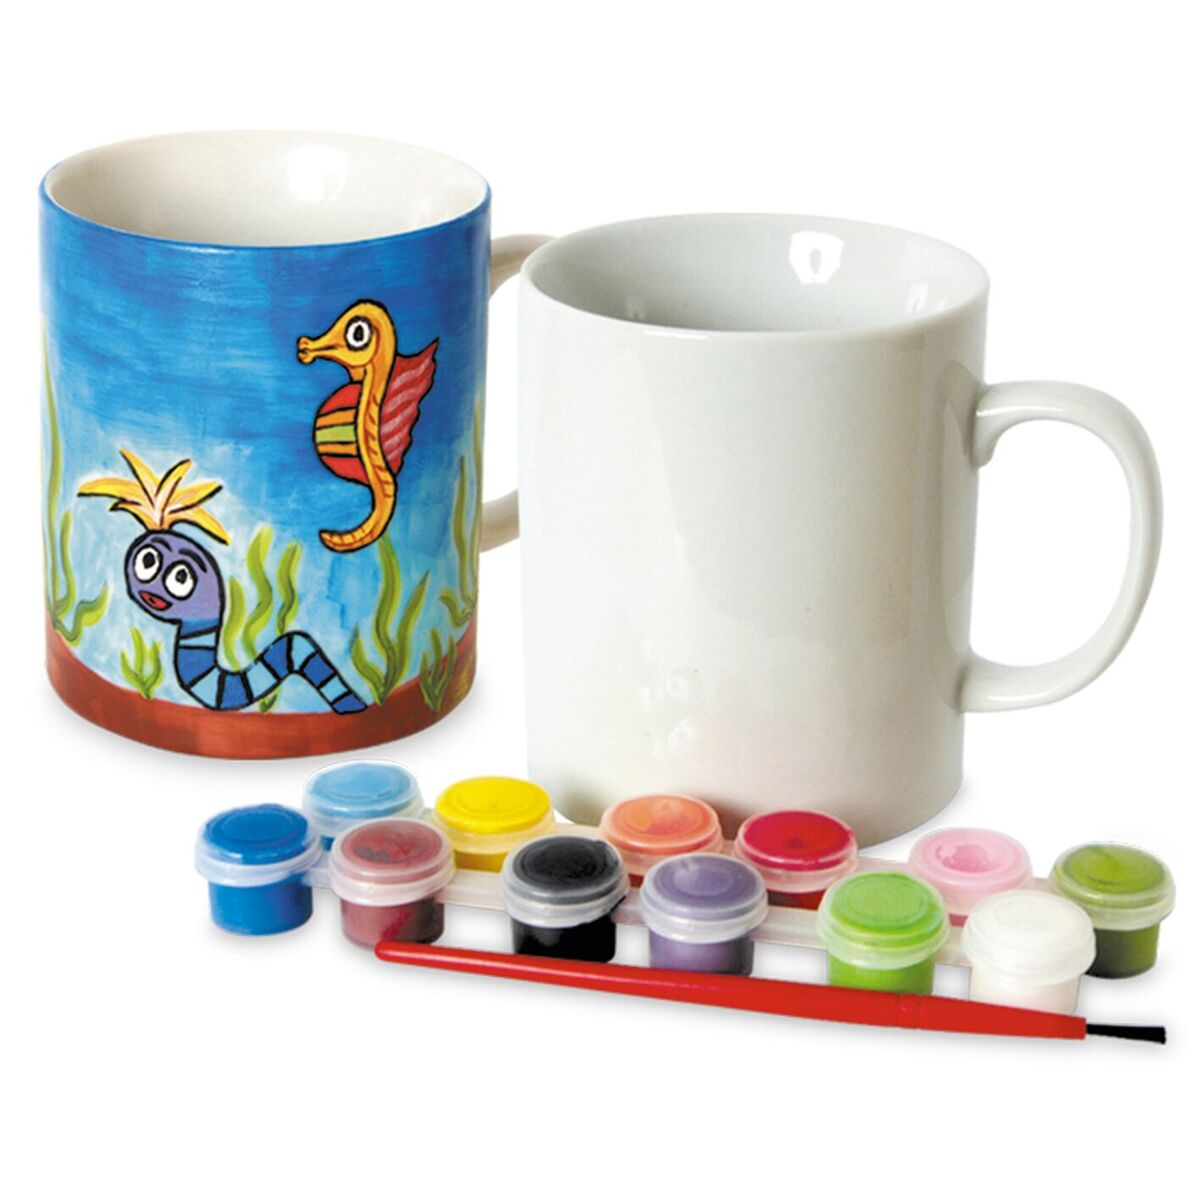 Toyrific Paint Your Own Mug The Gift And Gadget Store